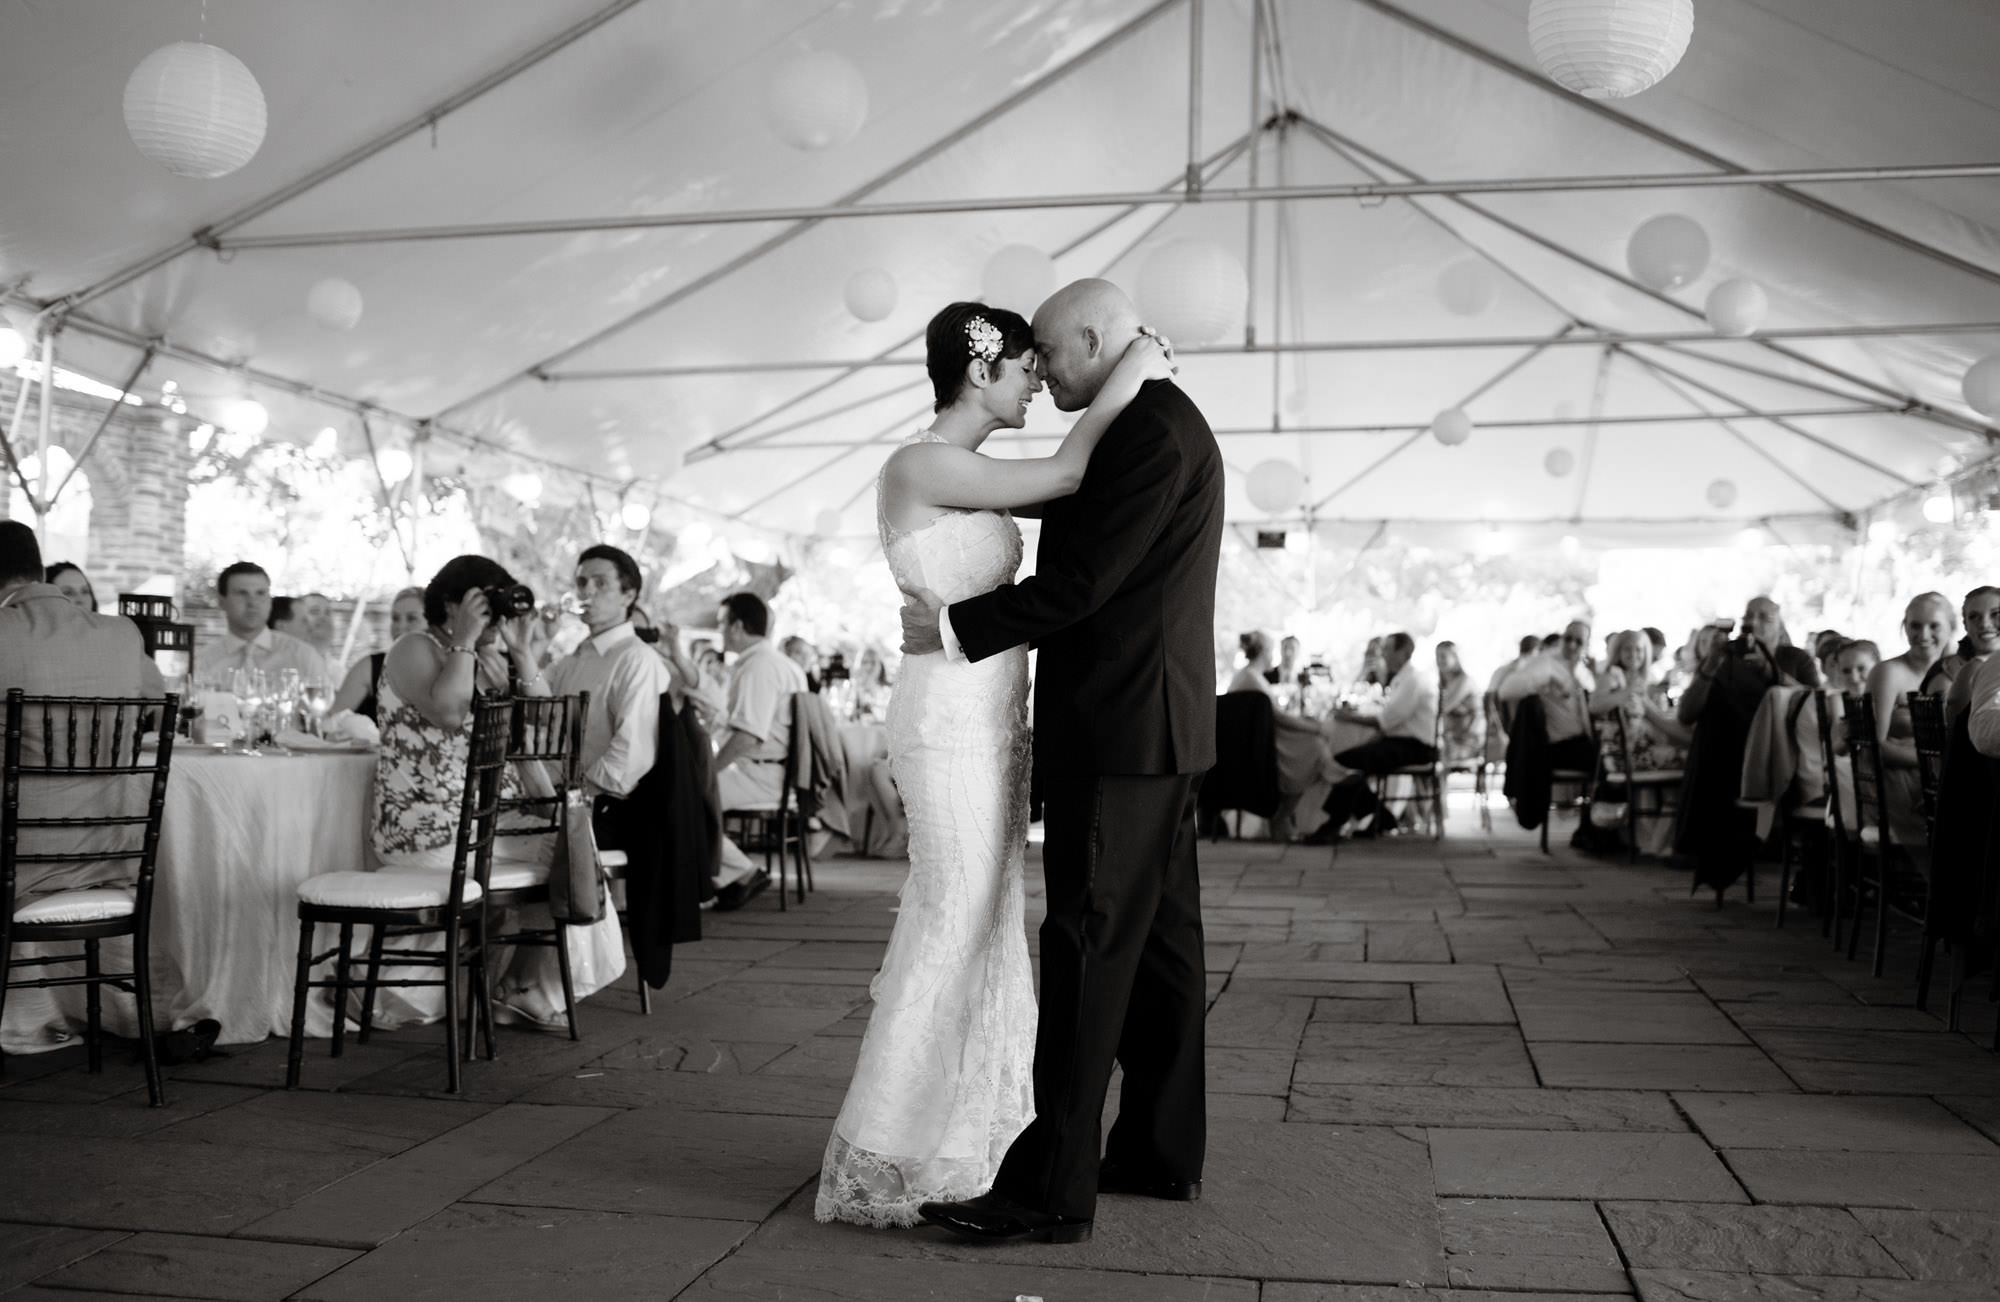 The bride and groom share their first dance during their River Farm wedding.